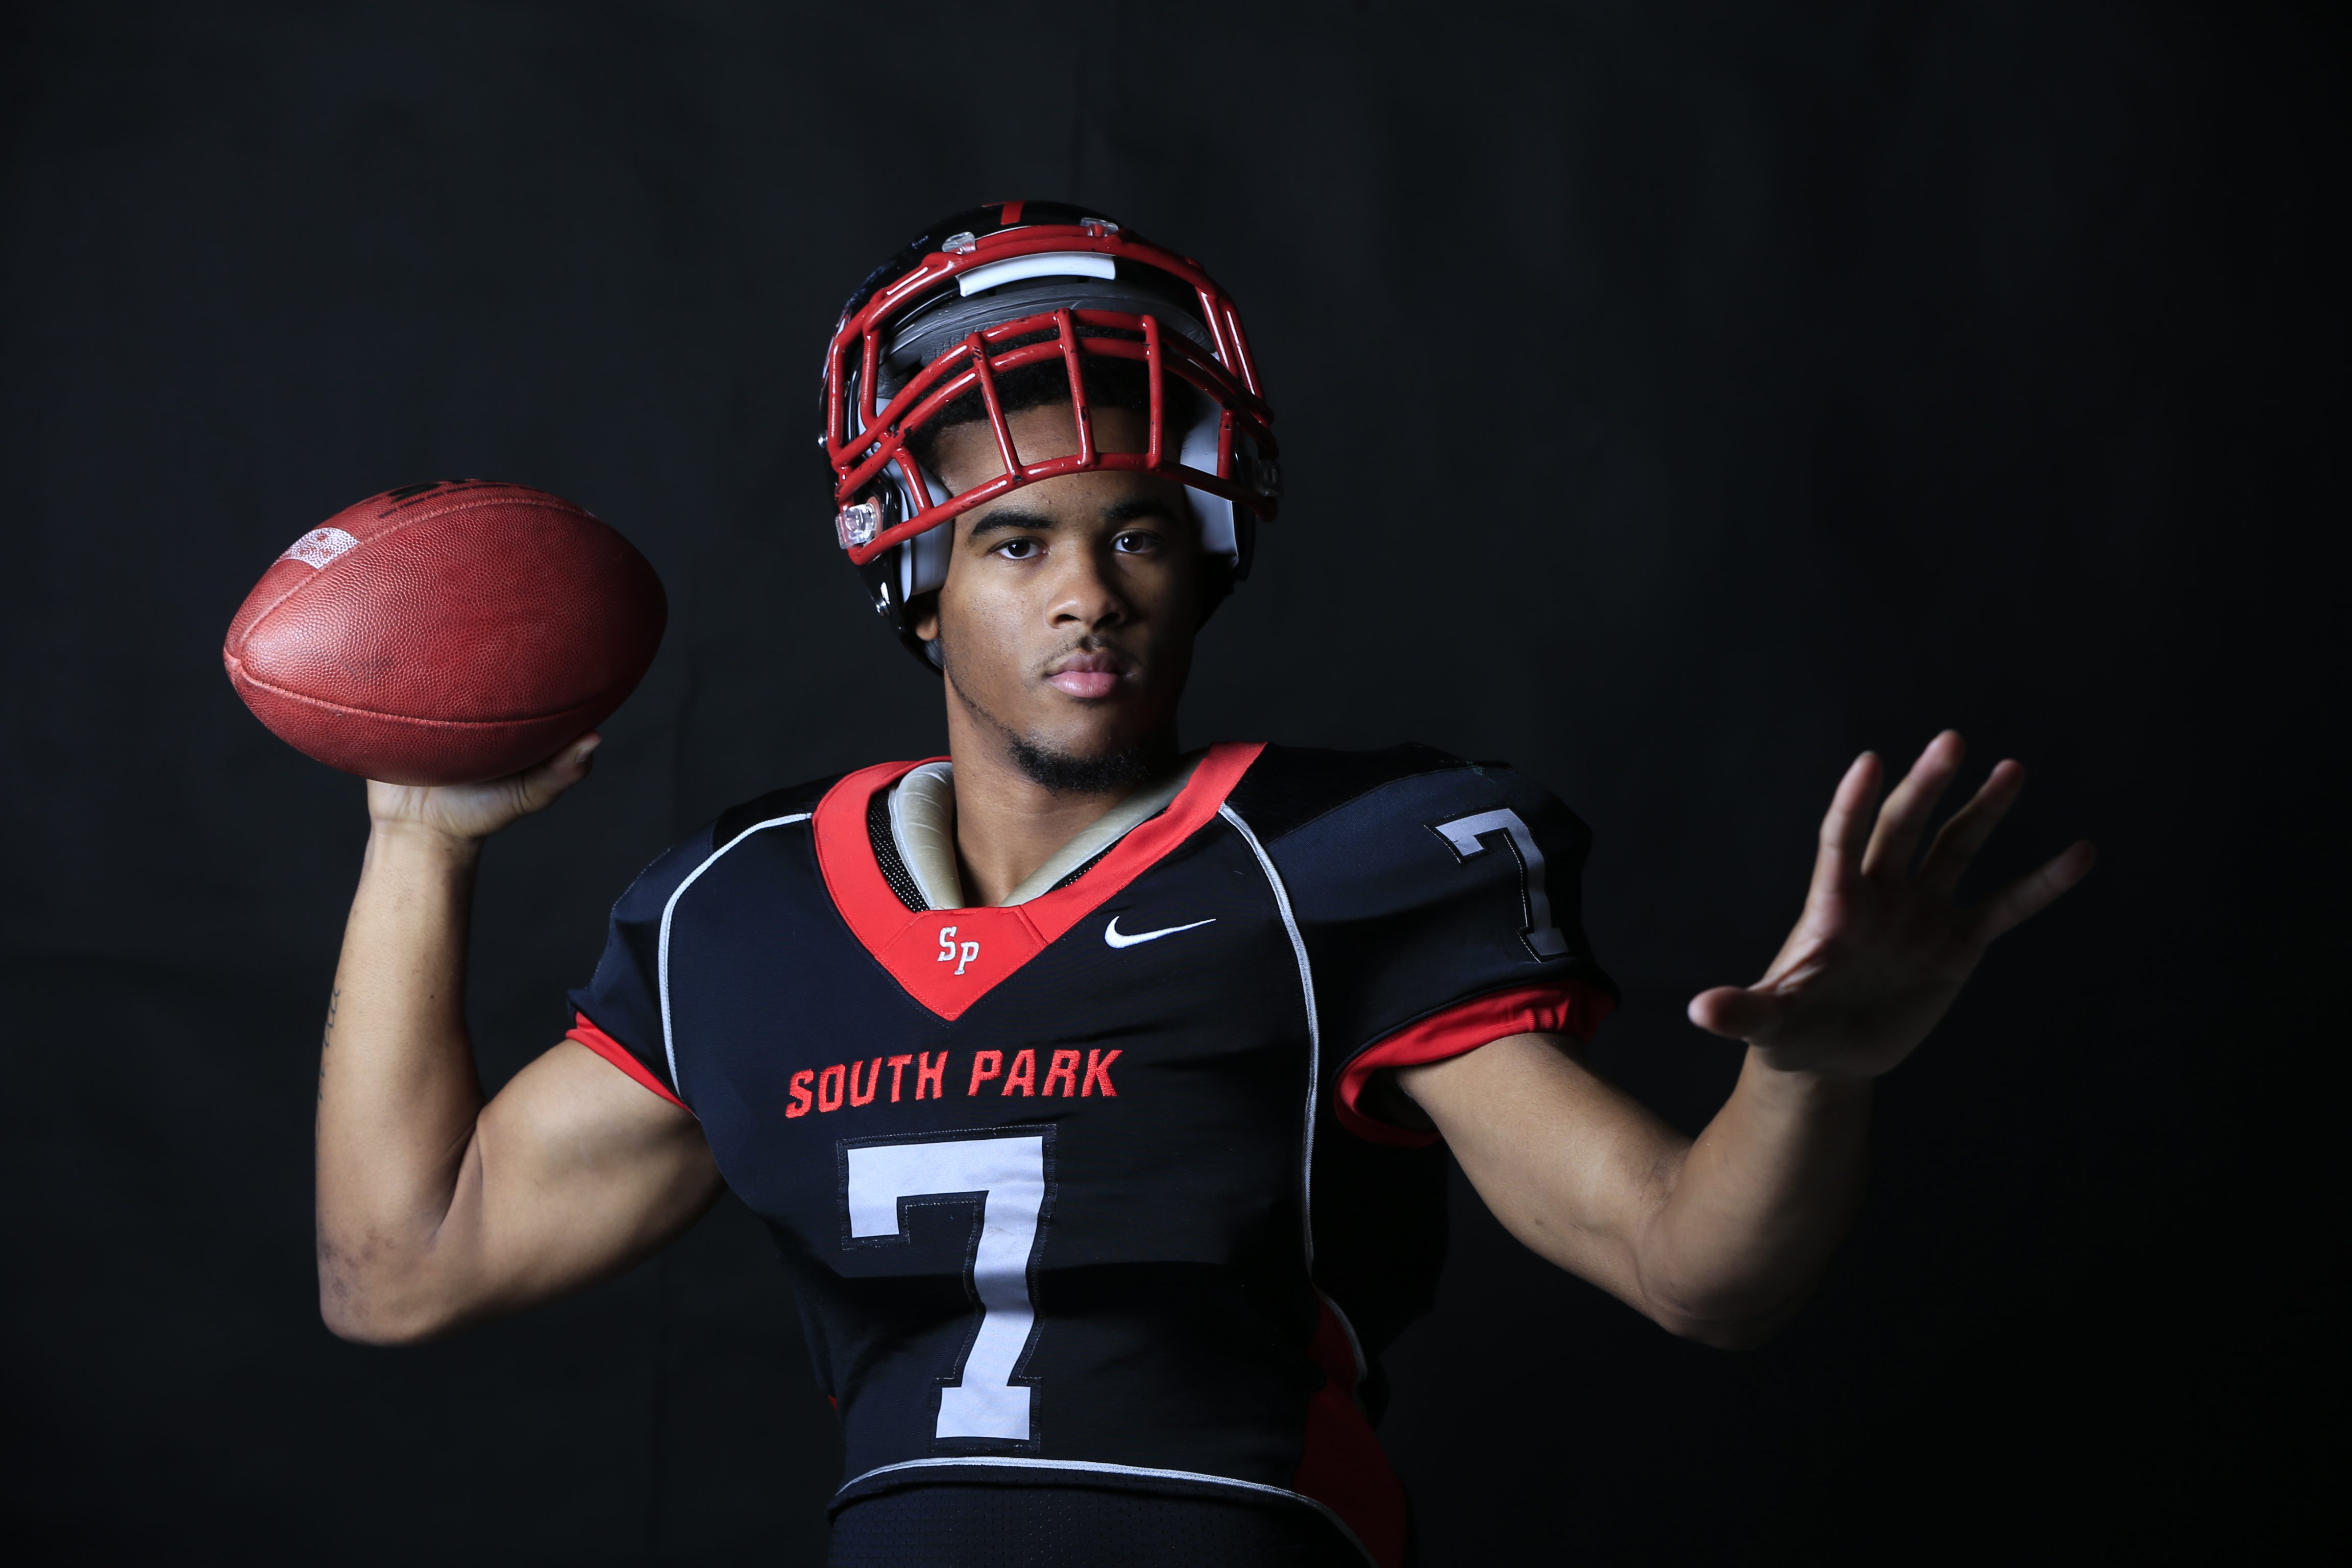 South Park QB Tyree Brown is All WNY player of the year. (Harry Scull Jr./Buffalo News)